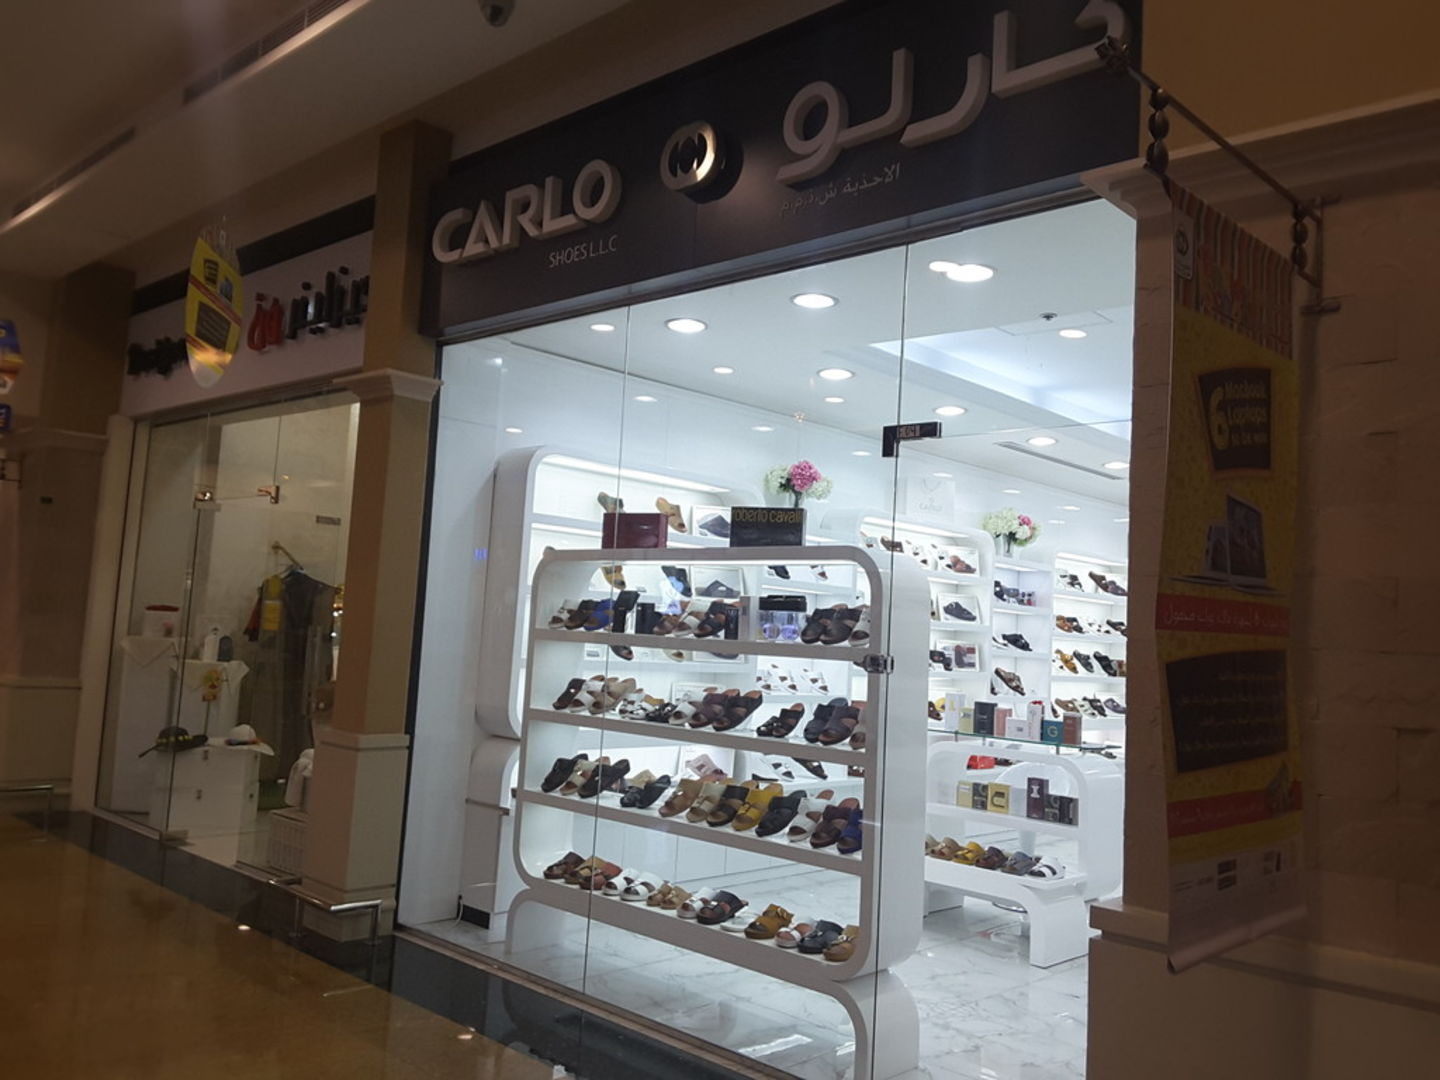 HiDubai-business-carlo-shoes-shopping-footwear-muhaisnah-1-dubai-2